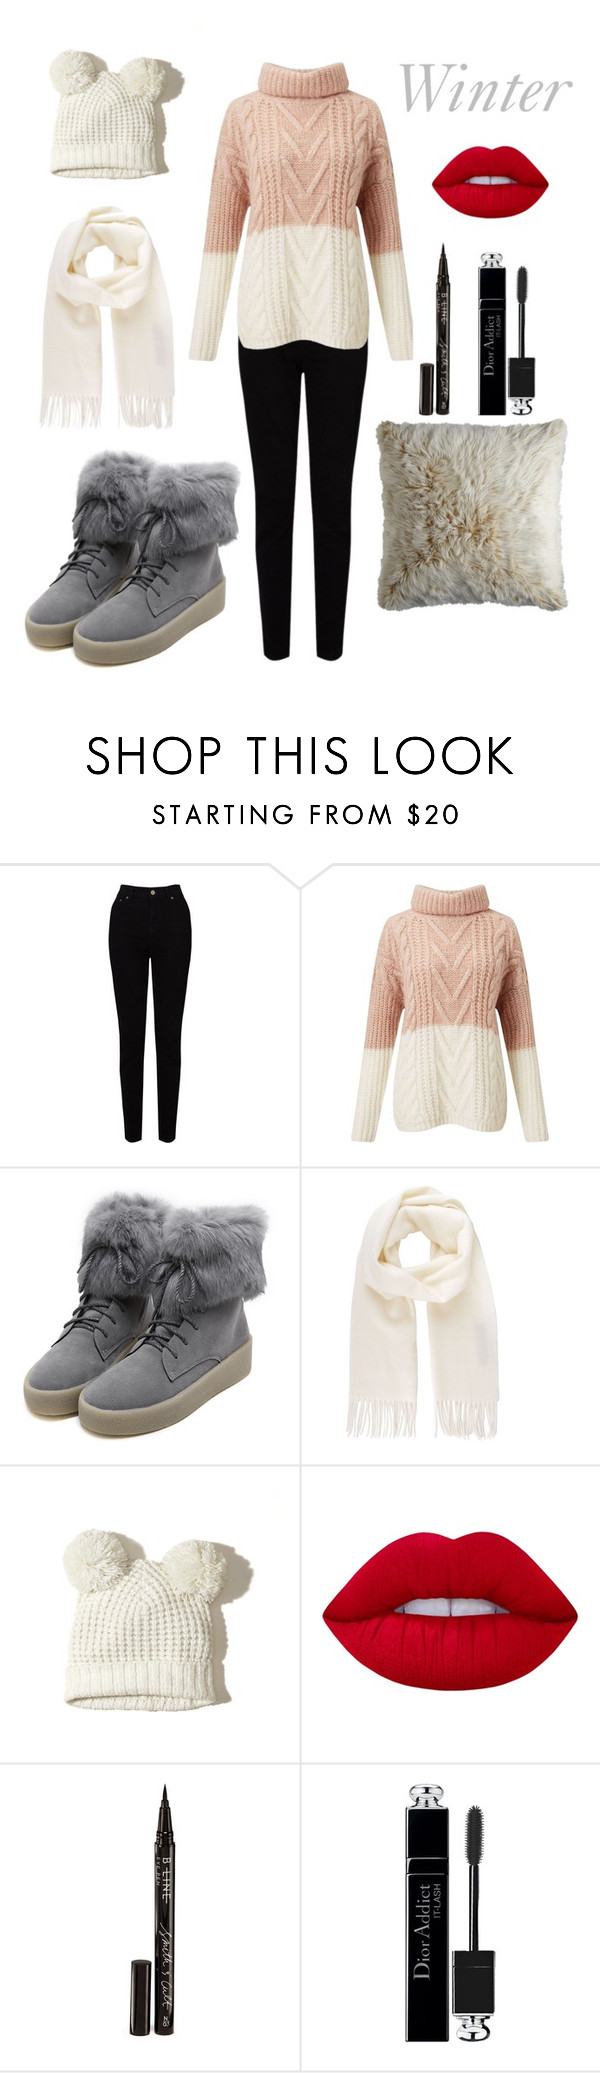 """""""Untitled #15"""" by lea-bdlt on Polyvore featuring EAST, Miss Selfridge, WithChic, Vivienne Westwood, Hollister Co., Lime Crime, Smith & Cult, Christian Dior and Pier 1 Imports"""